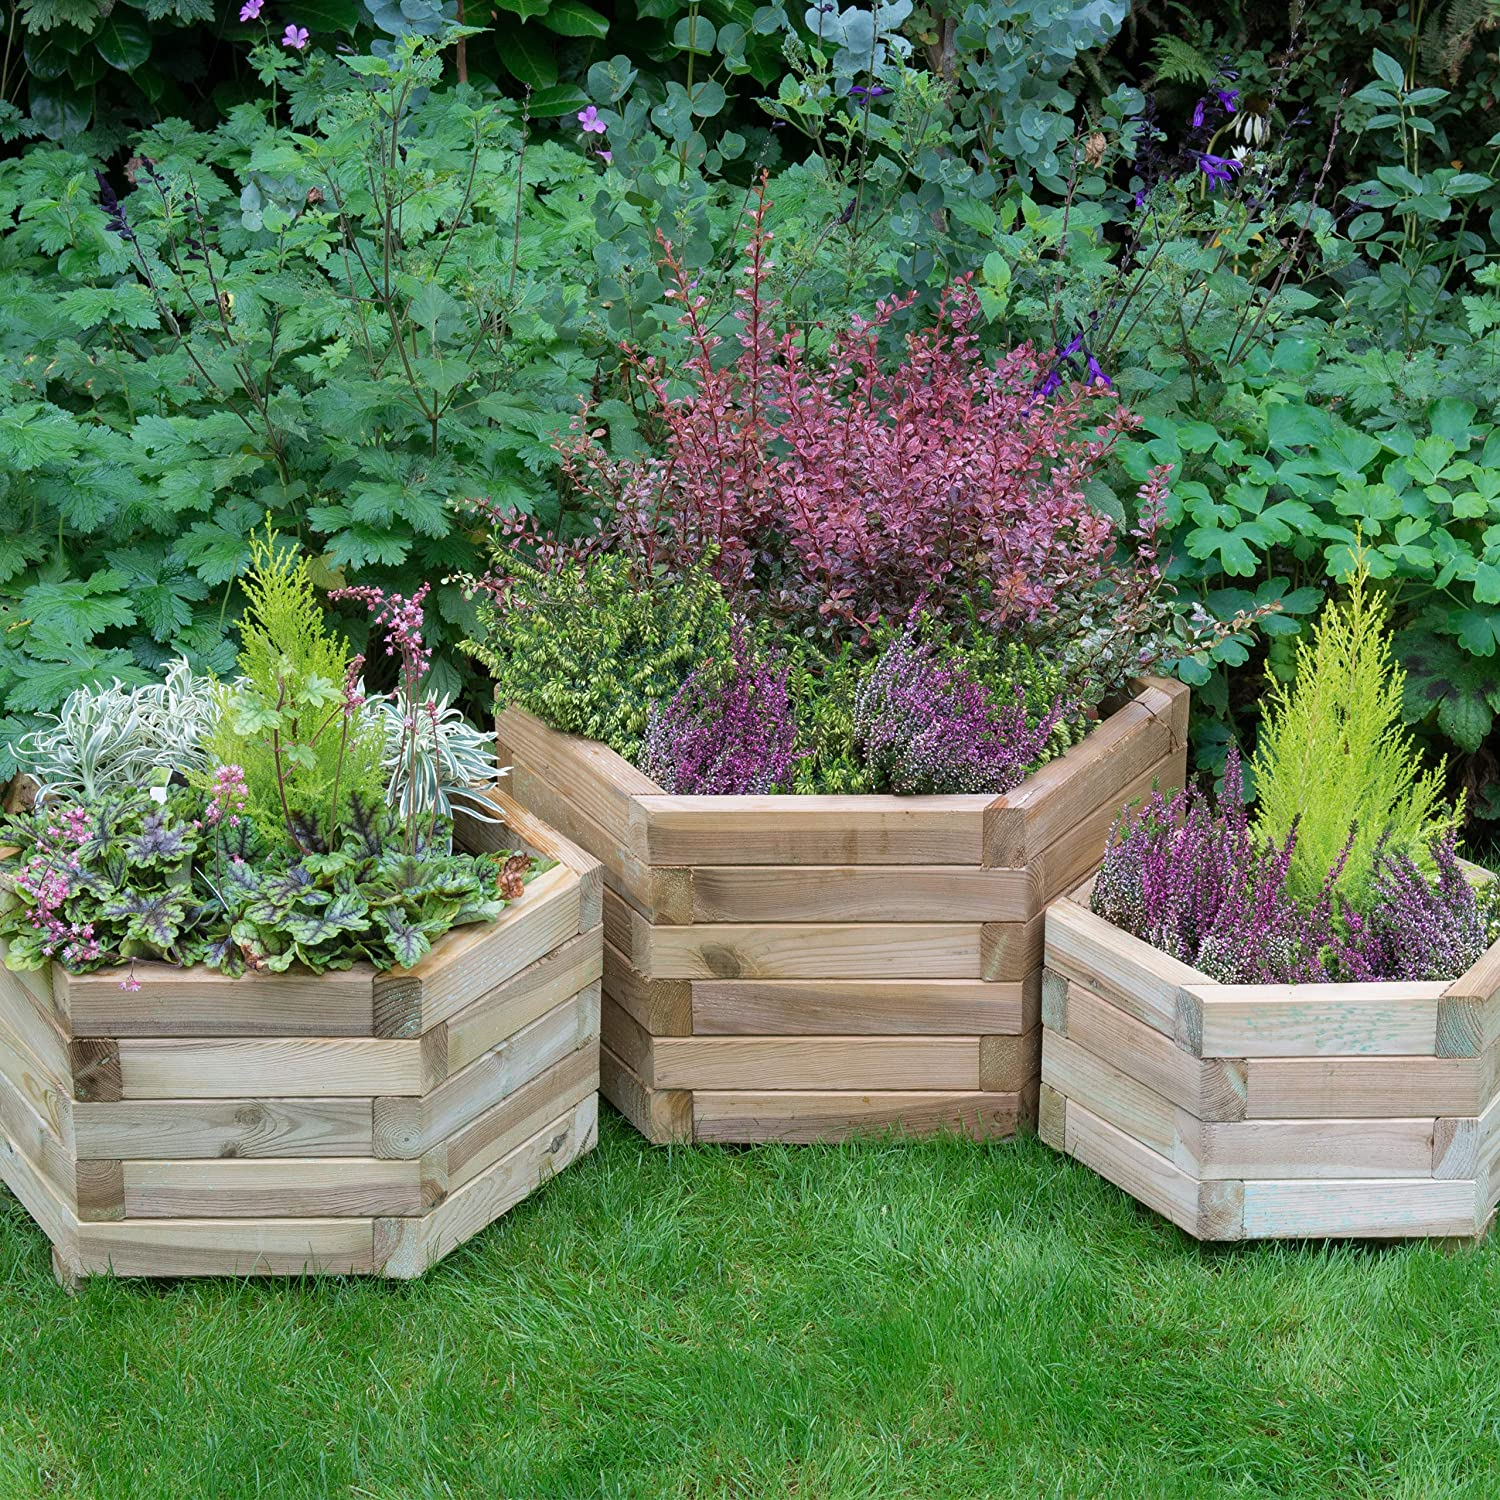 Forest Kendal Square Planter Set 3 in 1